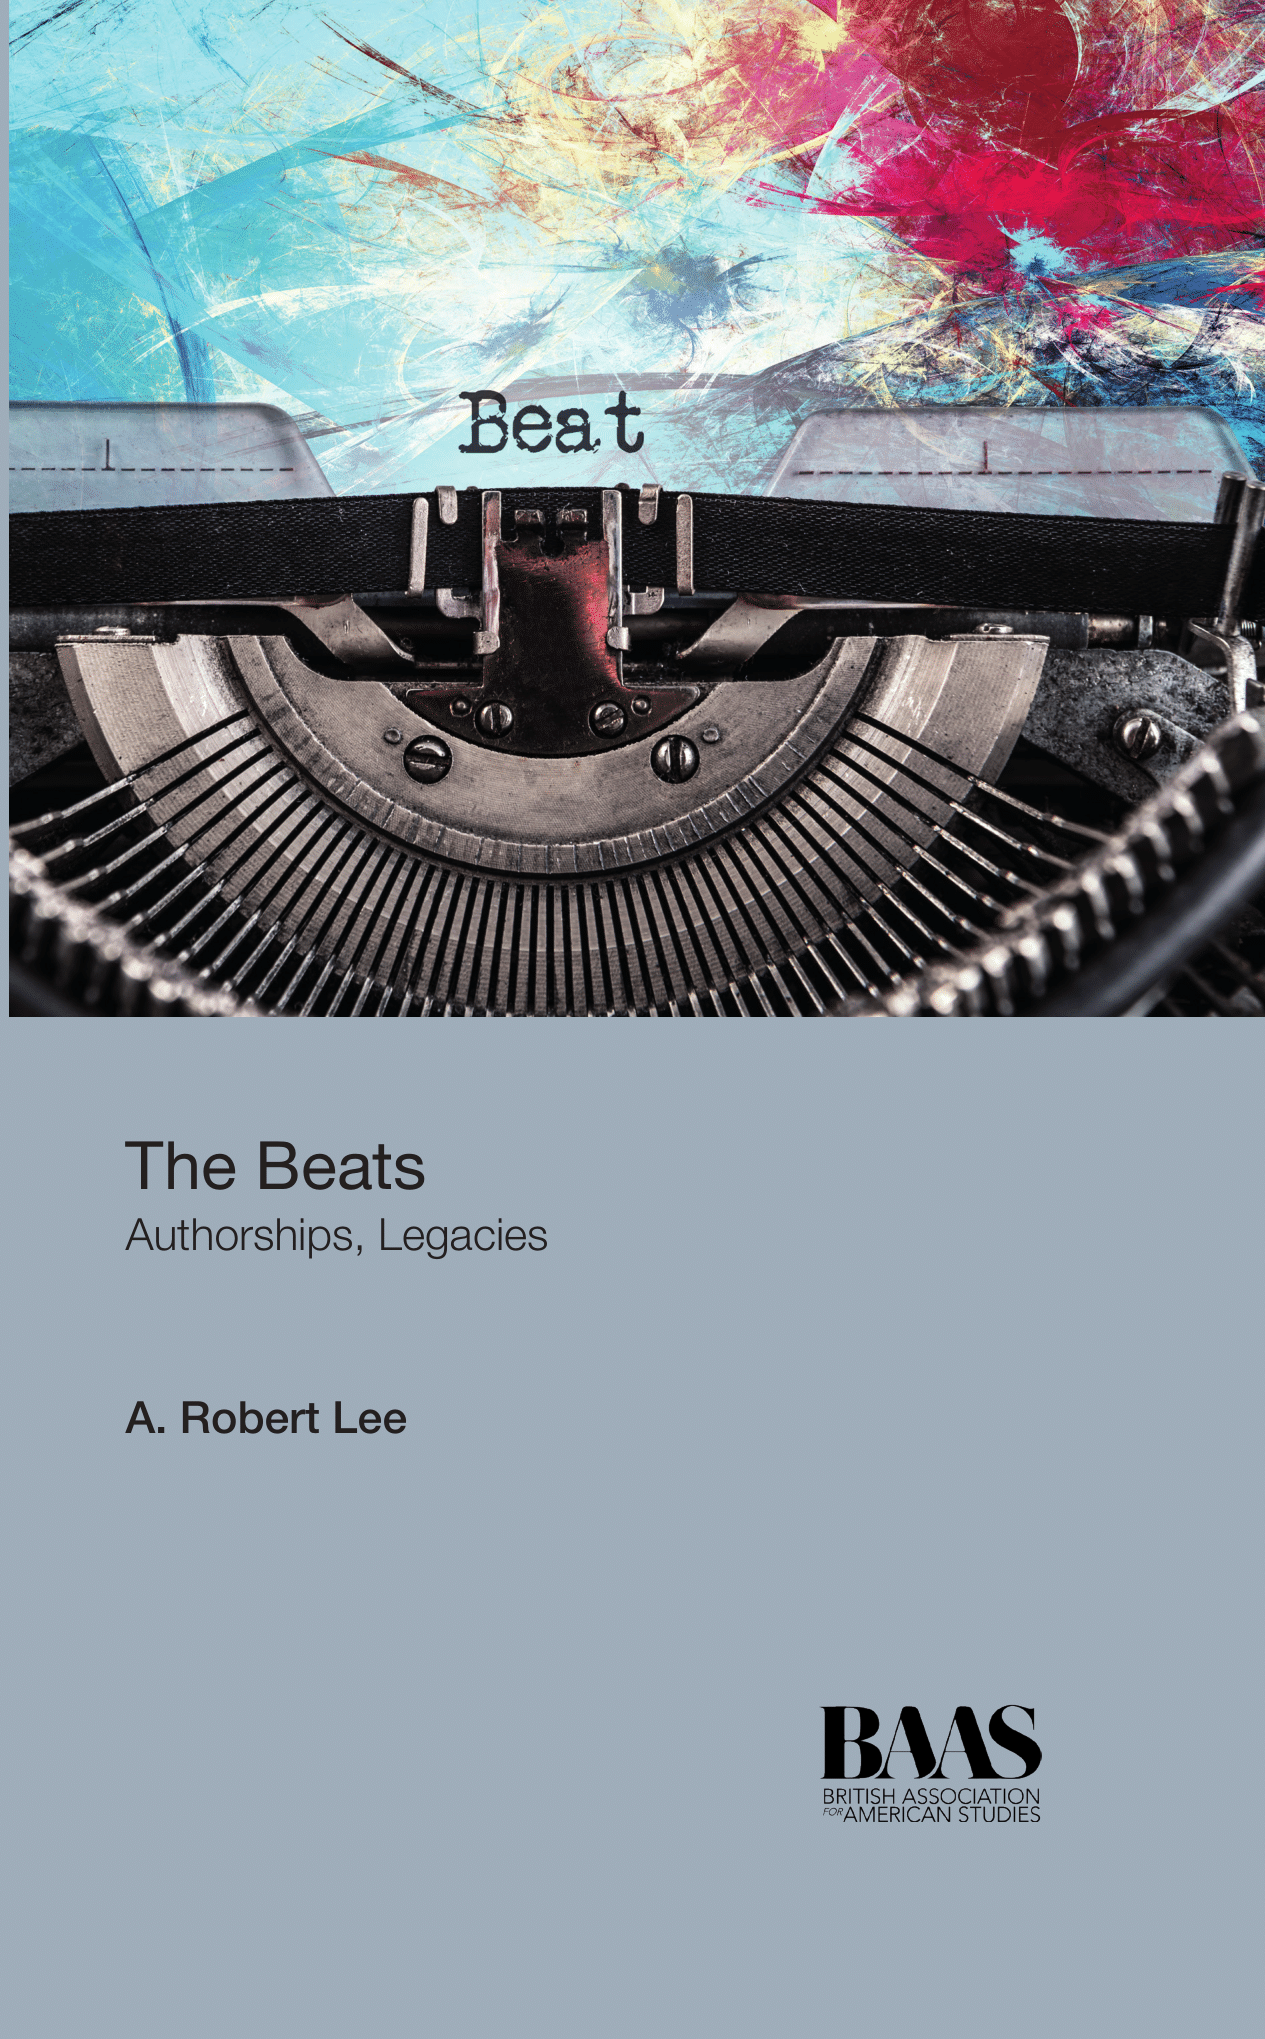 BEAT COVER FINAL-1 (1)